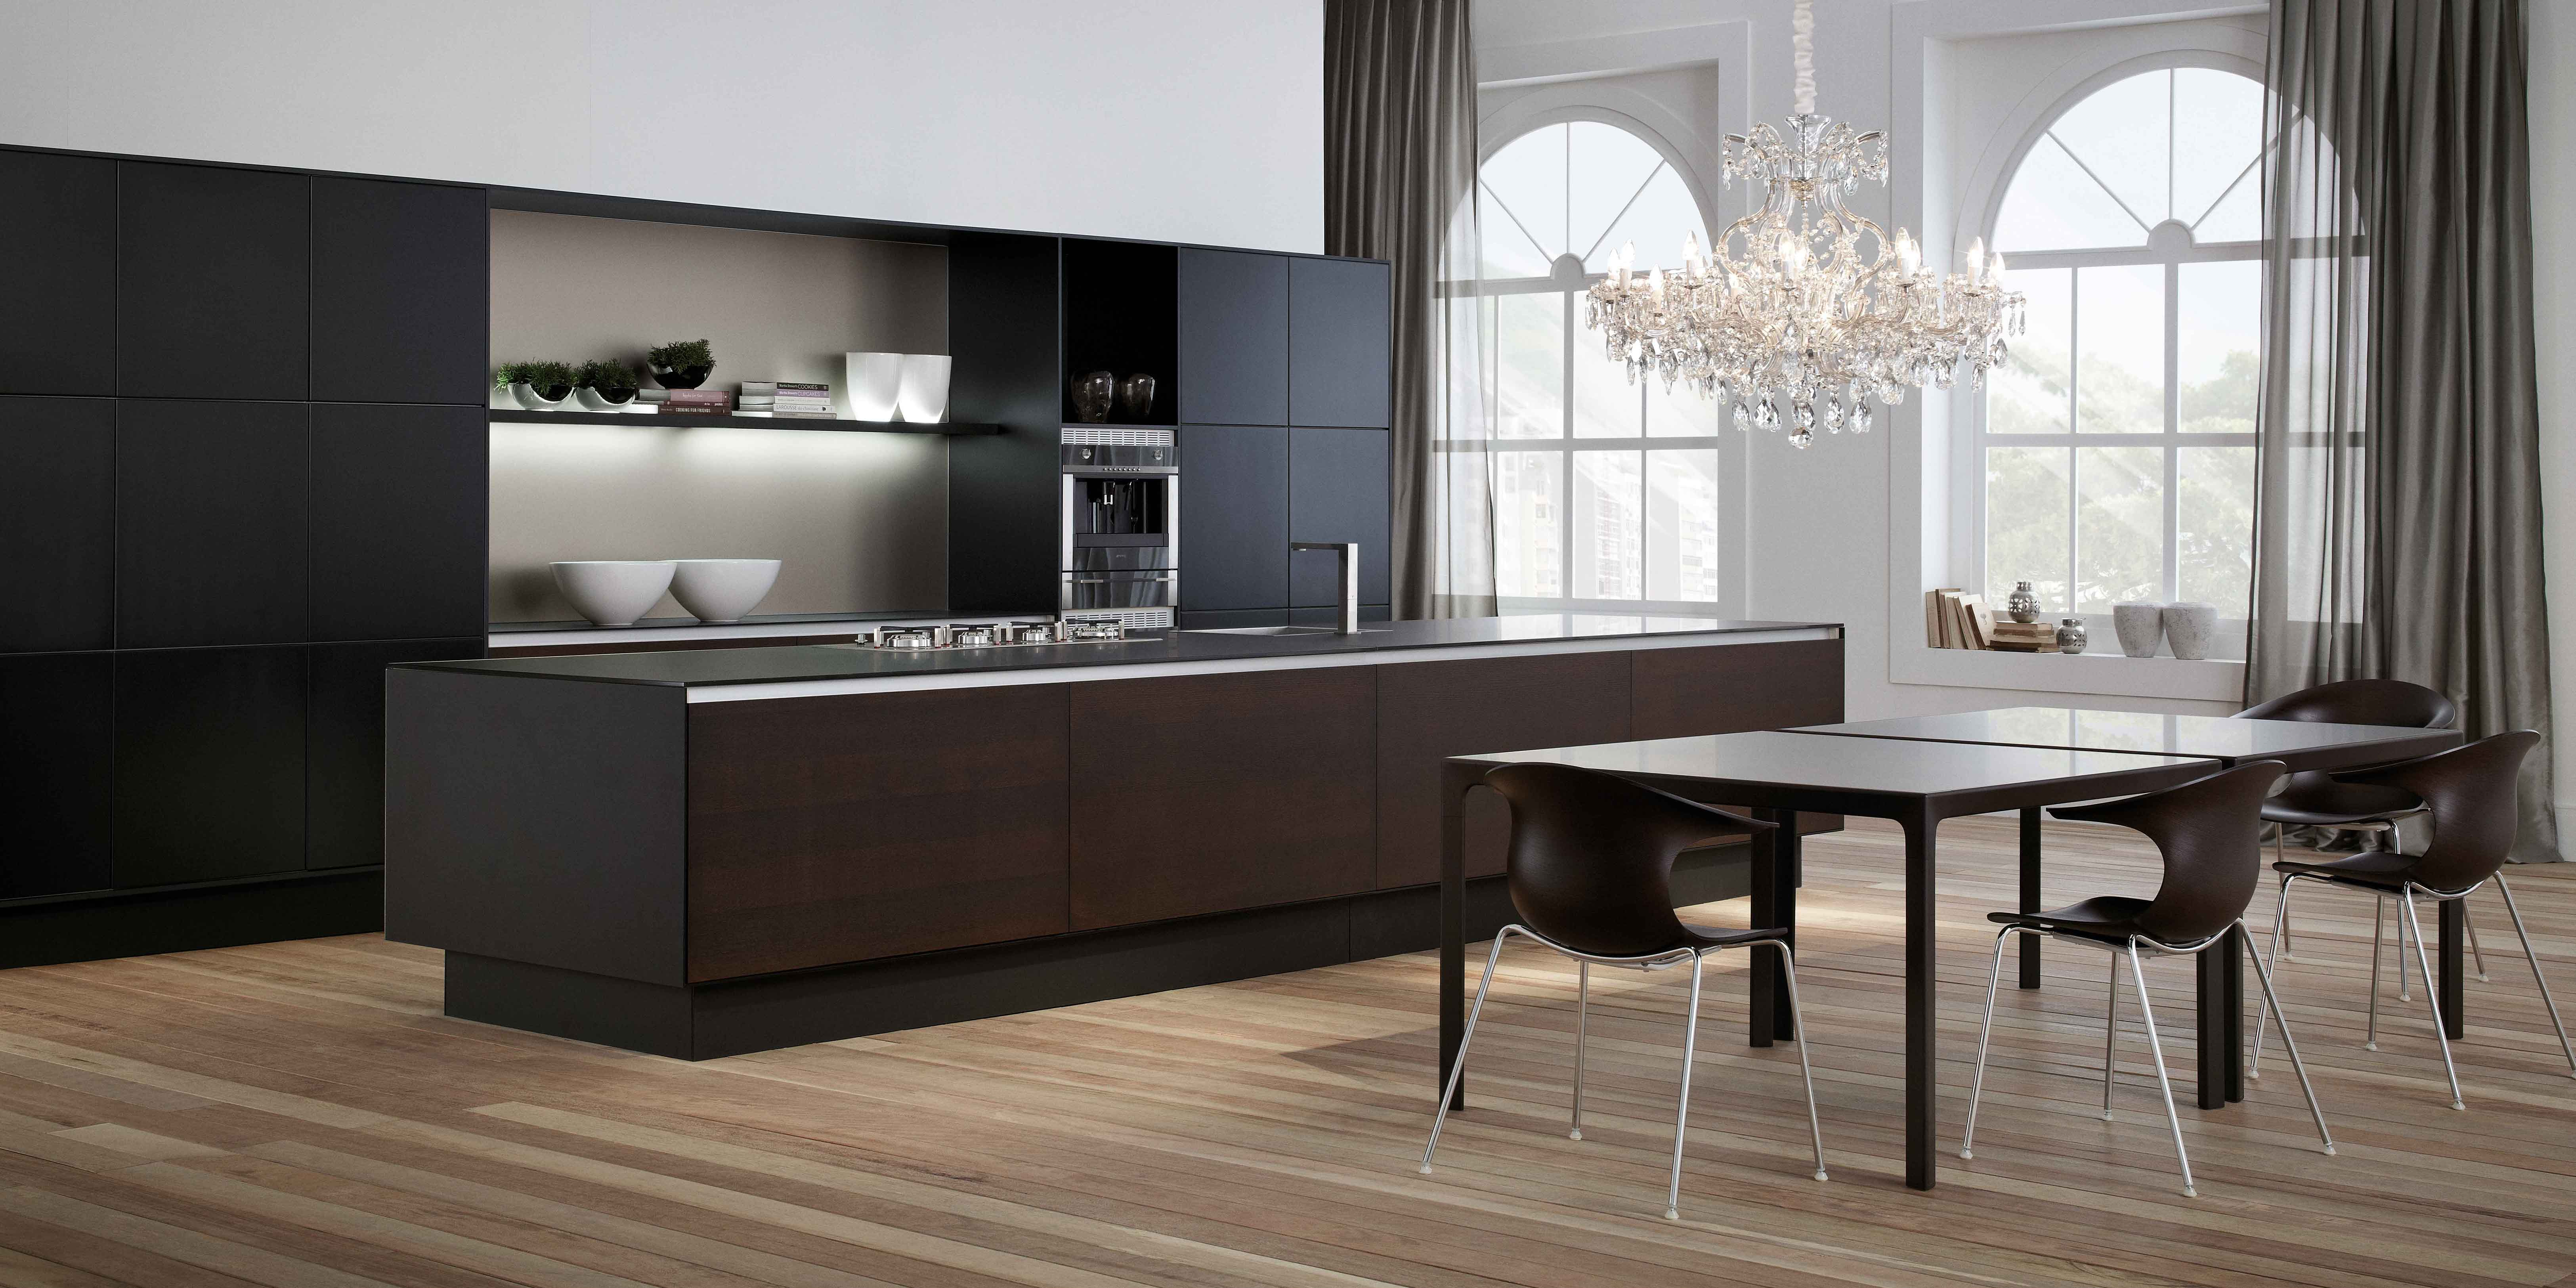 Dell Anno Kitchen is a Perfect Blend Of Modern And Impeccable Quality Kitchens. Tailor-Made Kitchens For Homes With Highly Architectonical.